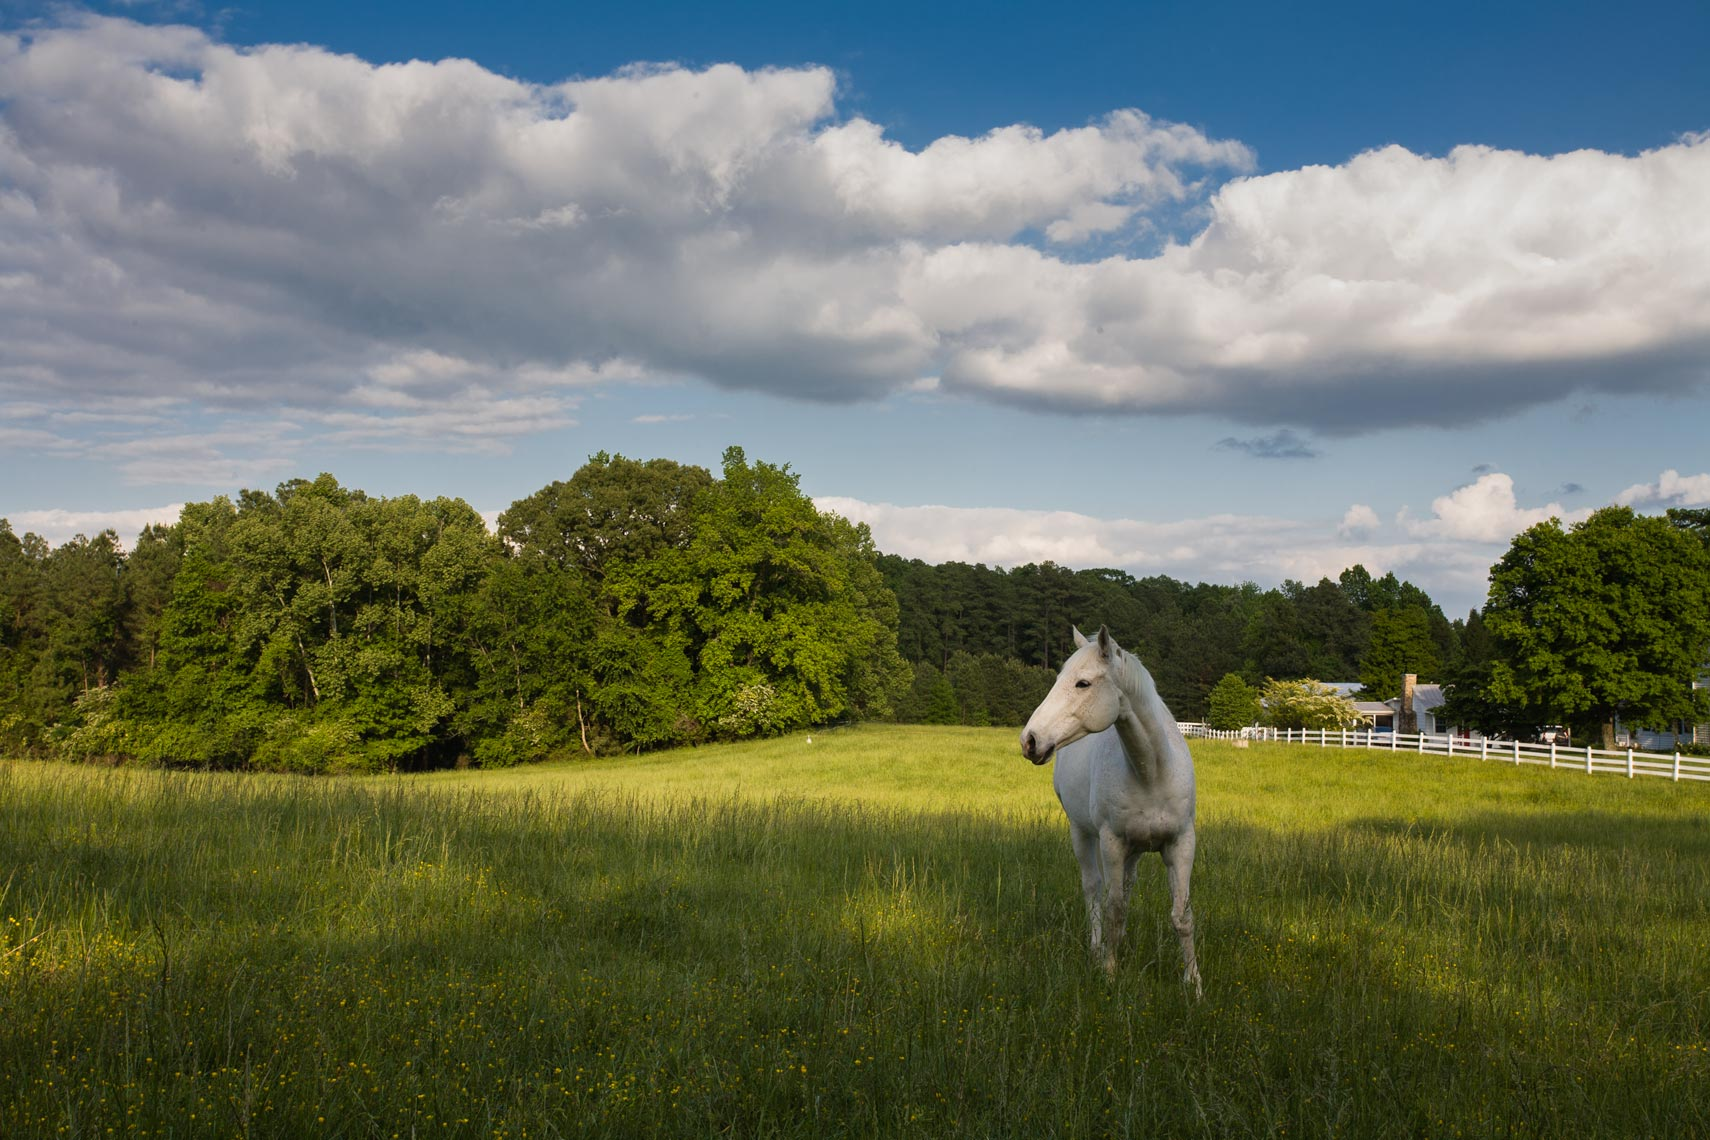 White horse in a field, Chapel Hill, NC